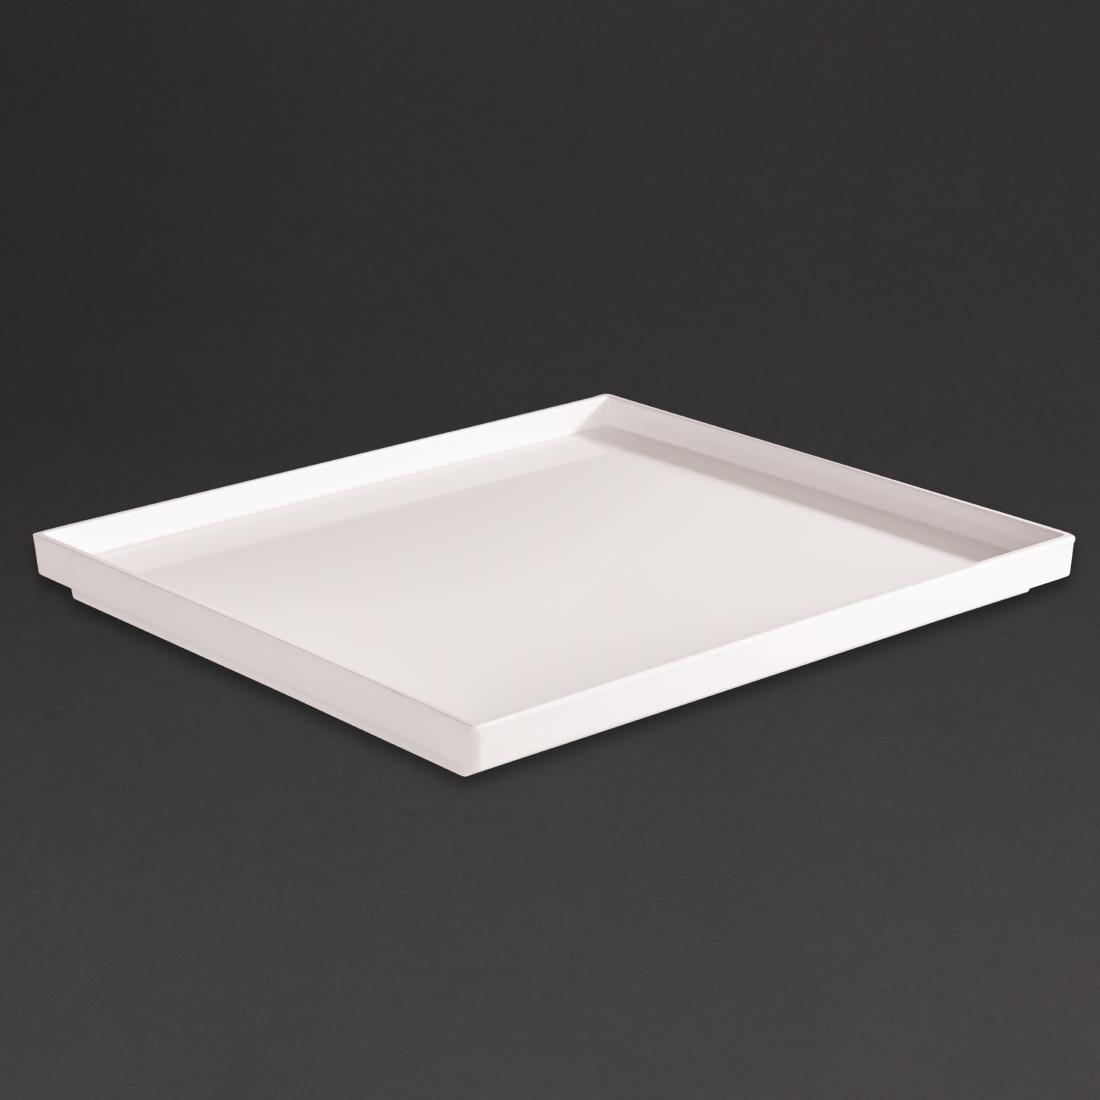 APS Asia+  White Tray GN 1/2 - Each - DT769